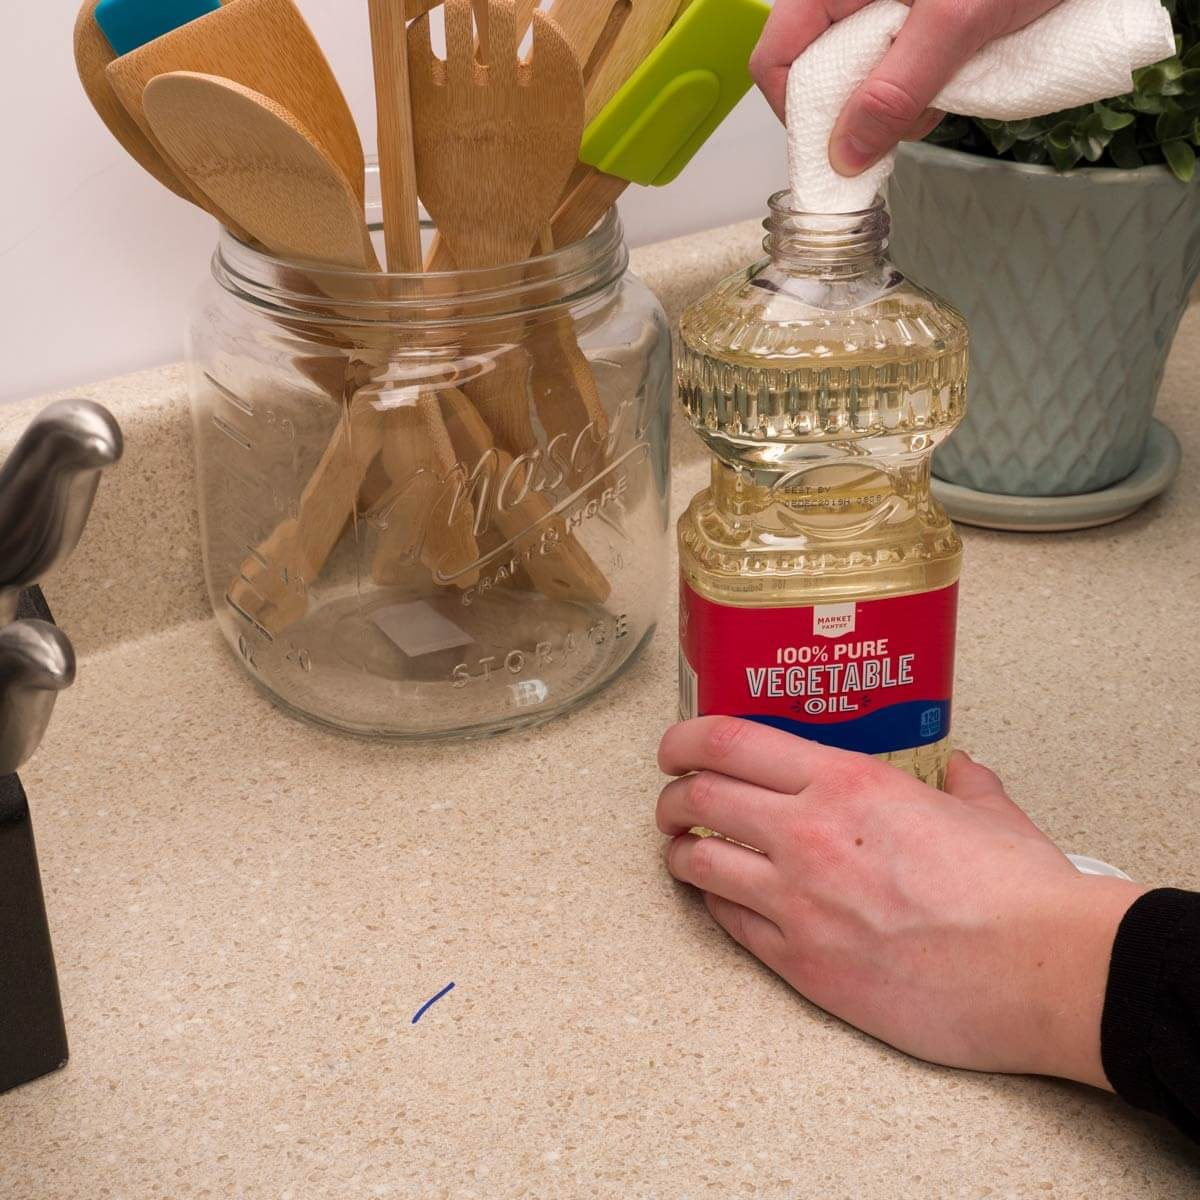 How To Remove Sharpie From Countertop How To Remove Permanent Marker On Laminate The Family Handyman